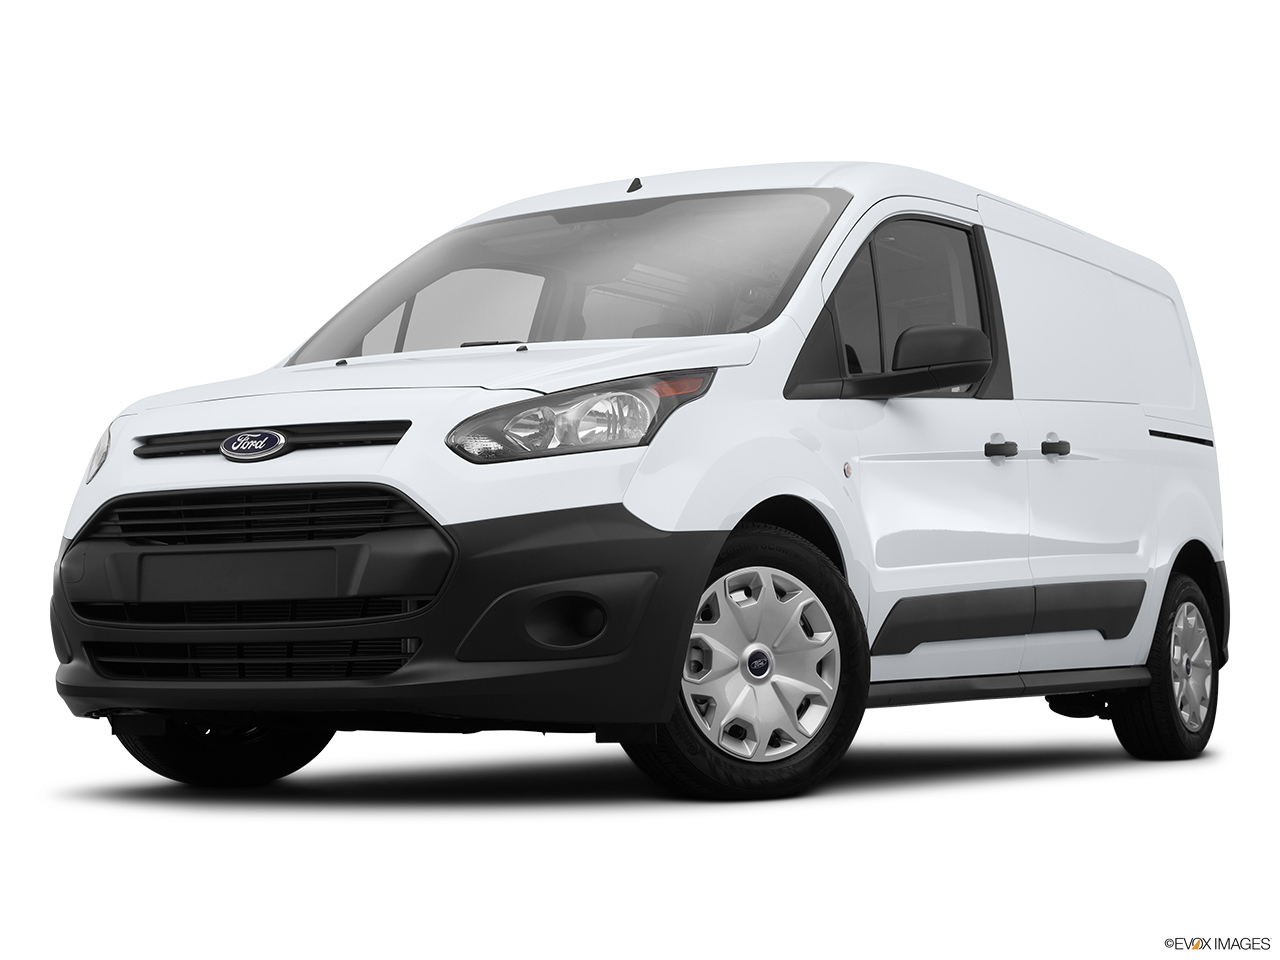 Ford Transit Connect >> 2014 Ford Transit Connect LWB XL - Front angle view, low wide perspective